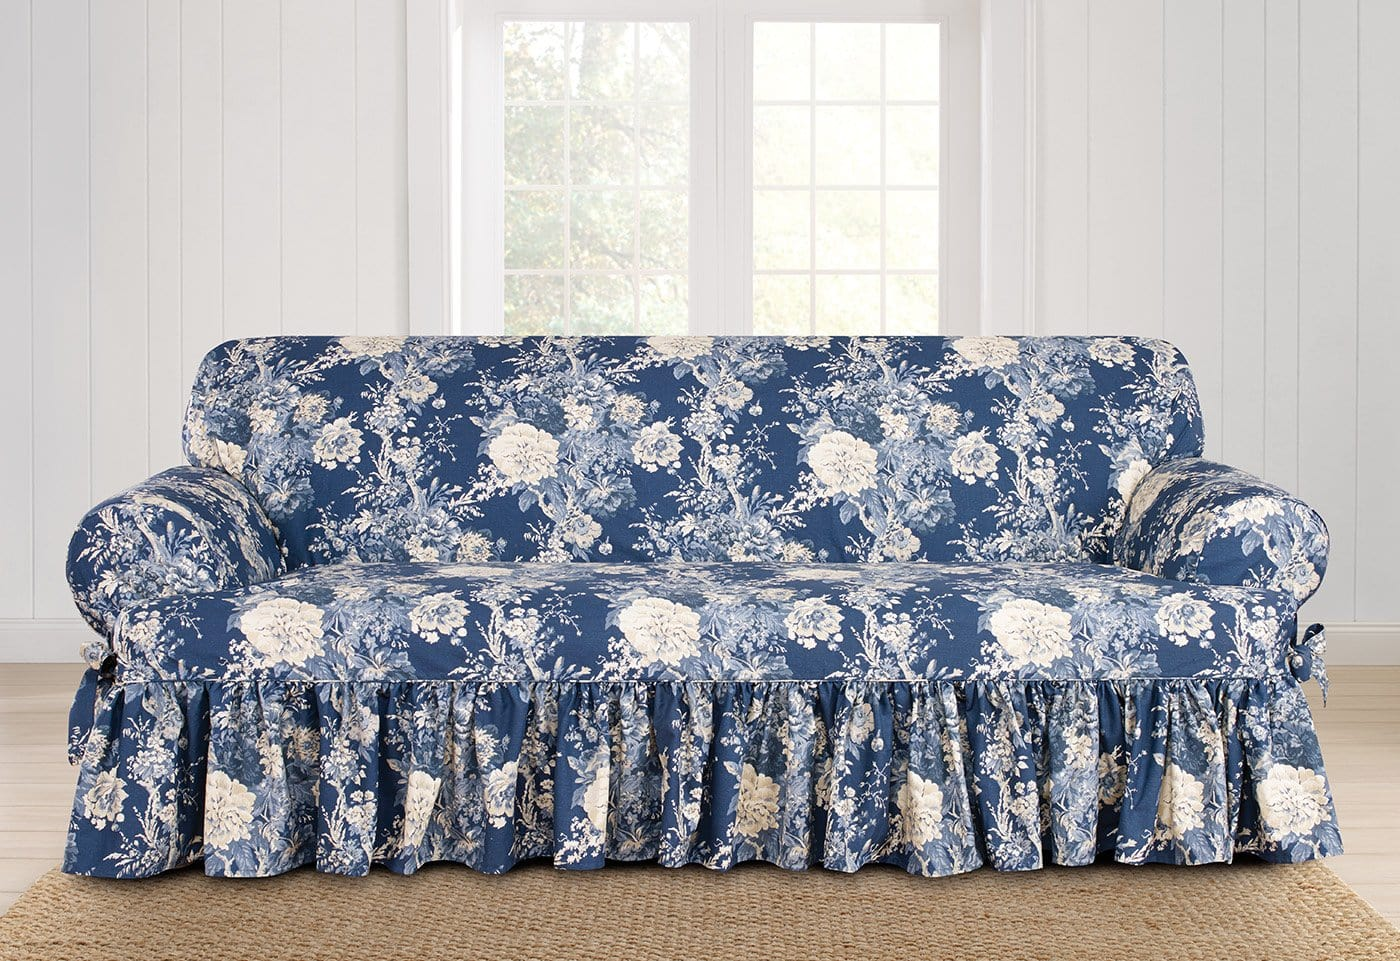 Ballad Bouquet By Waverly One Piece Sofa Slipcover - Final Sale